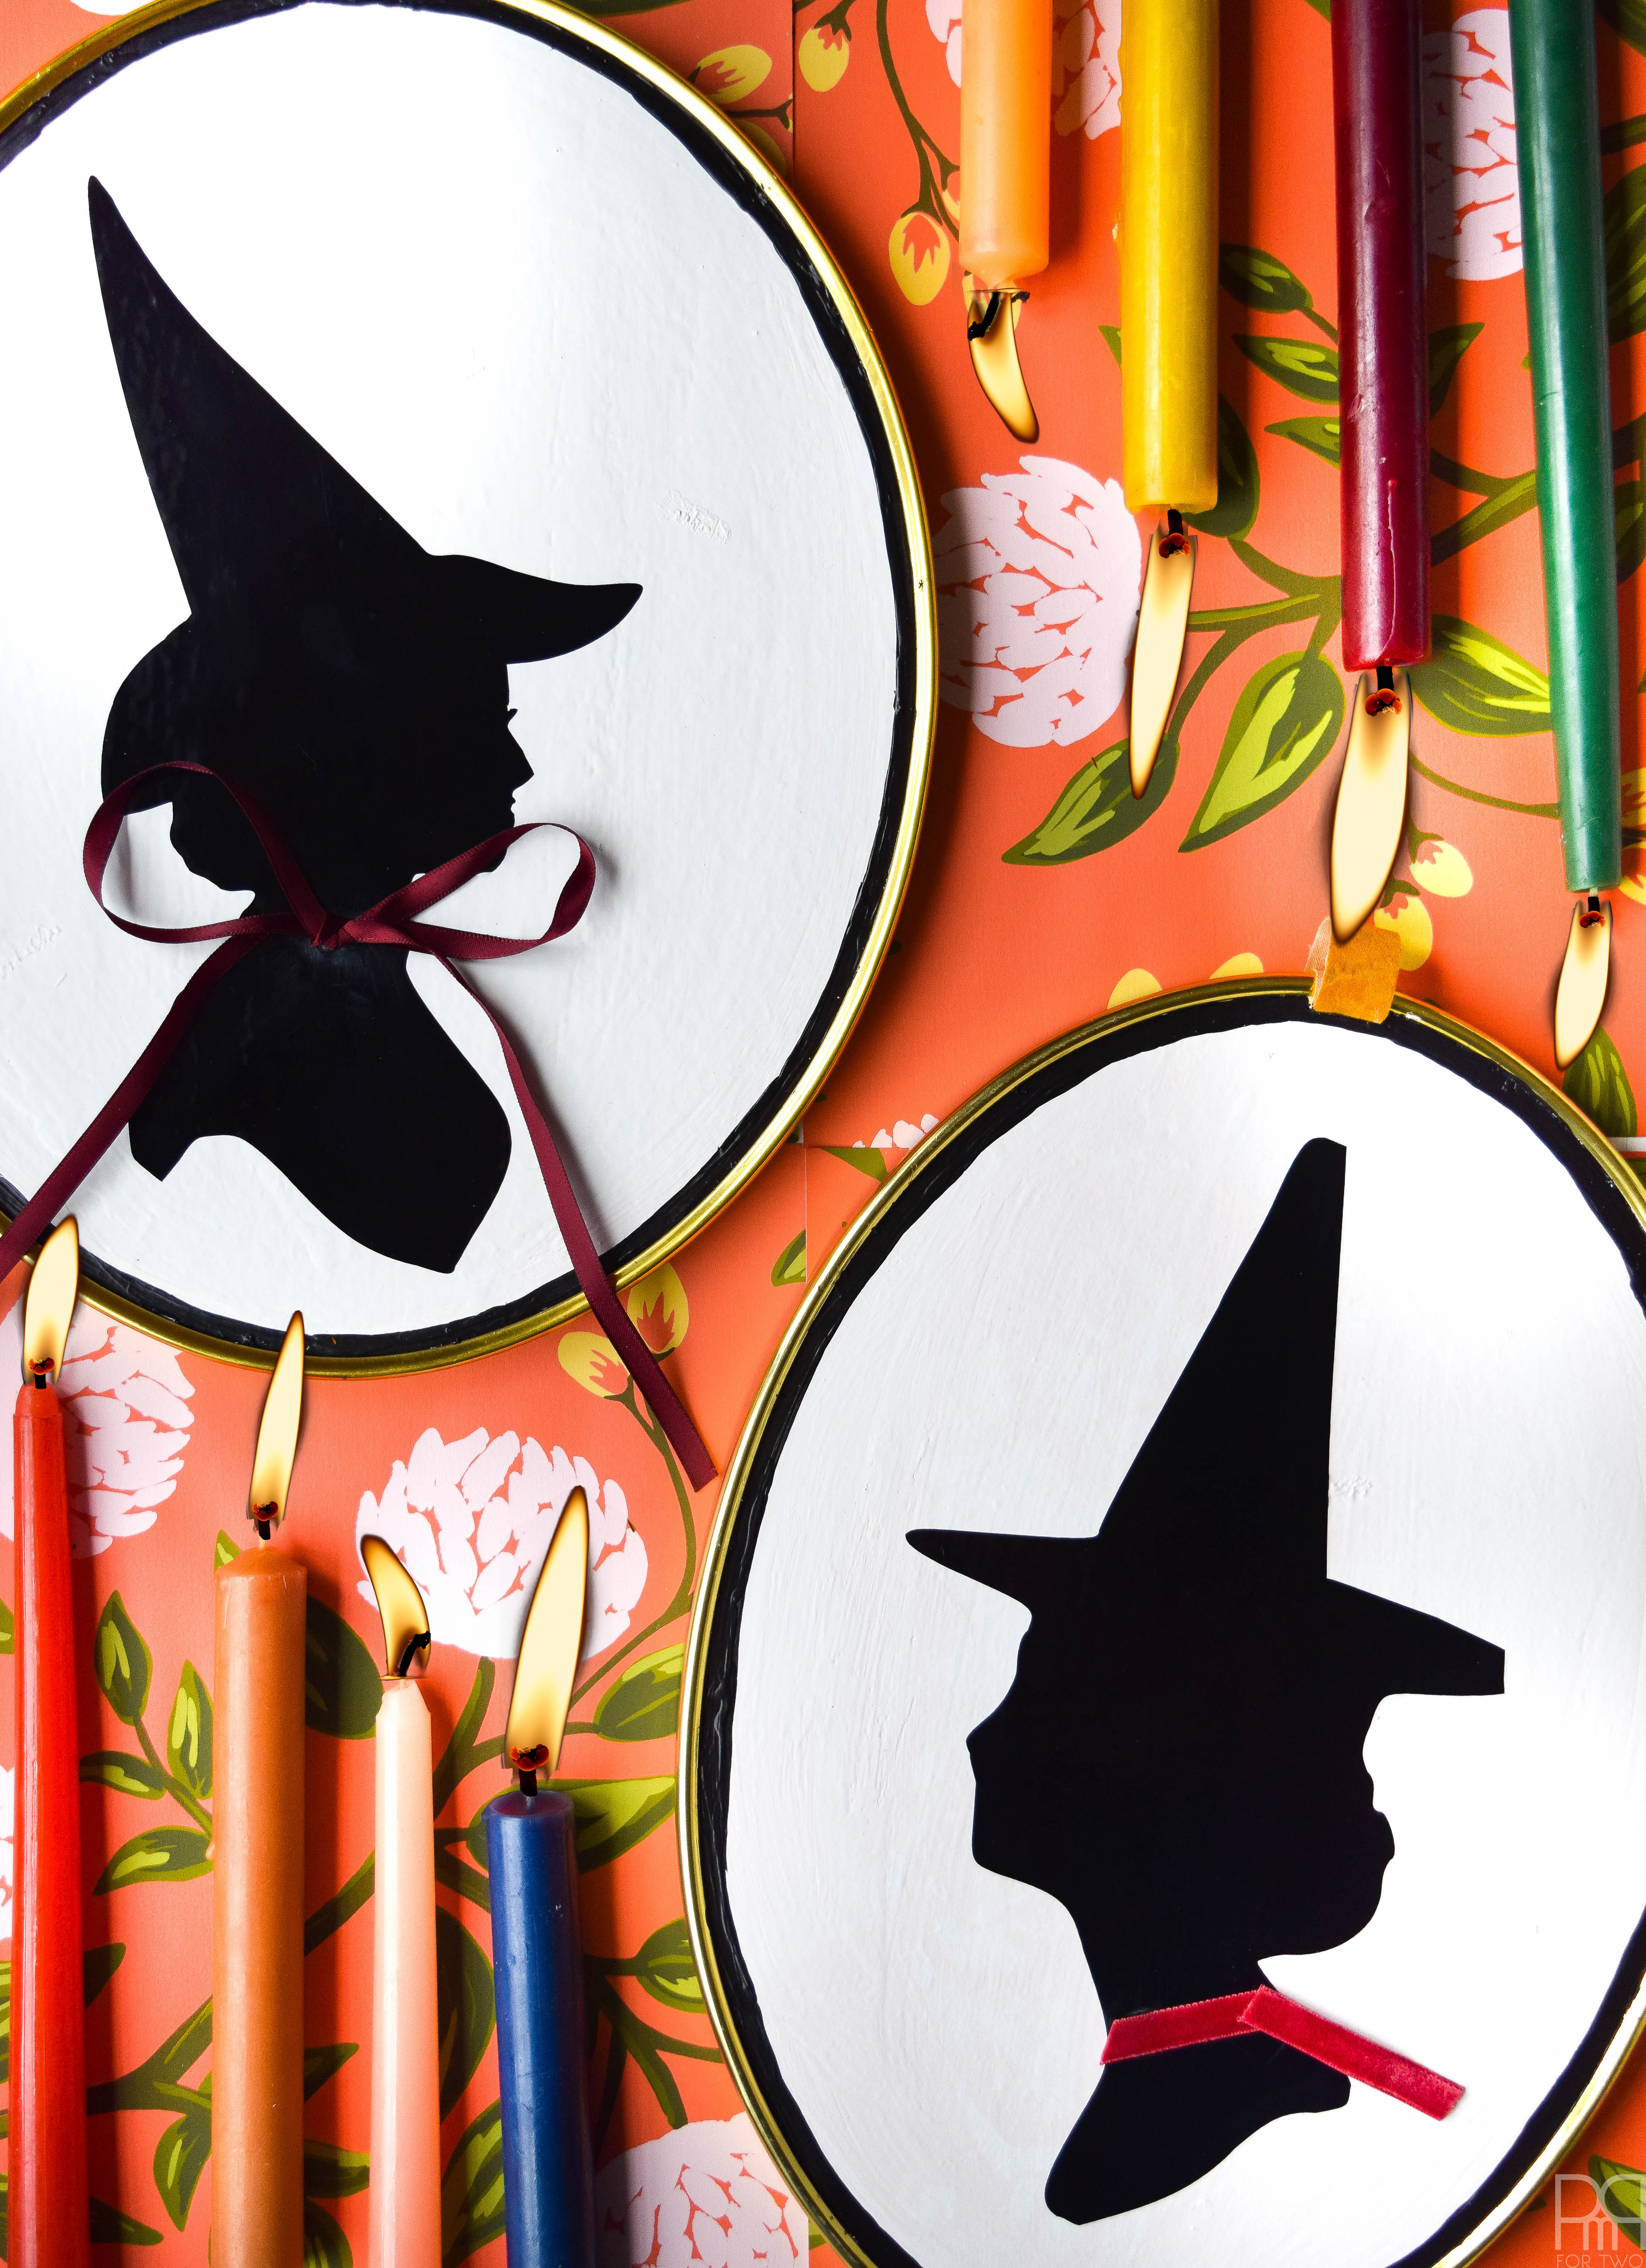 Make your own DIY Witch Silhouette Decor using your Cricut and thrifted frames. Halloween decor doesn't have to be cheesy to look good.